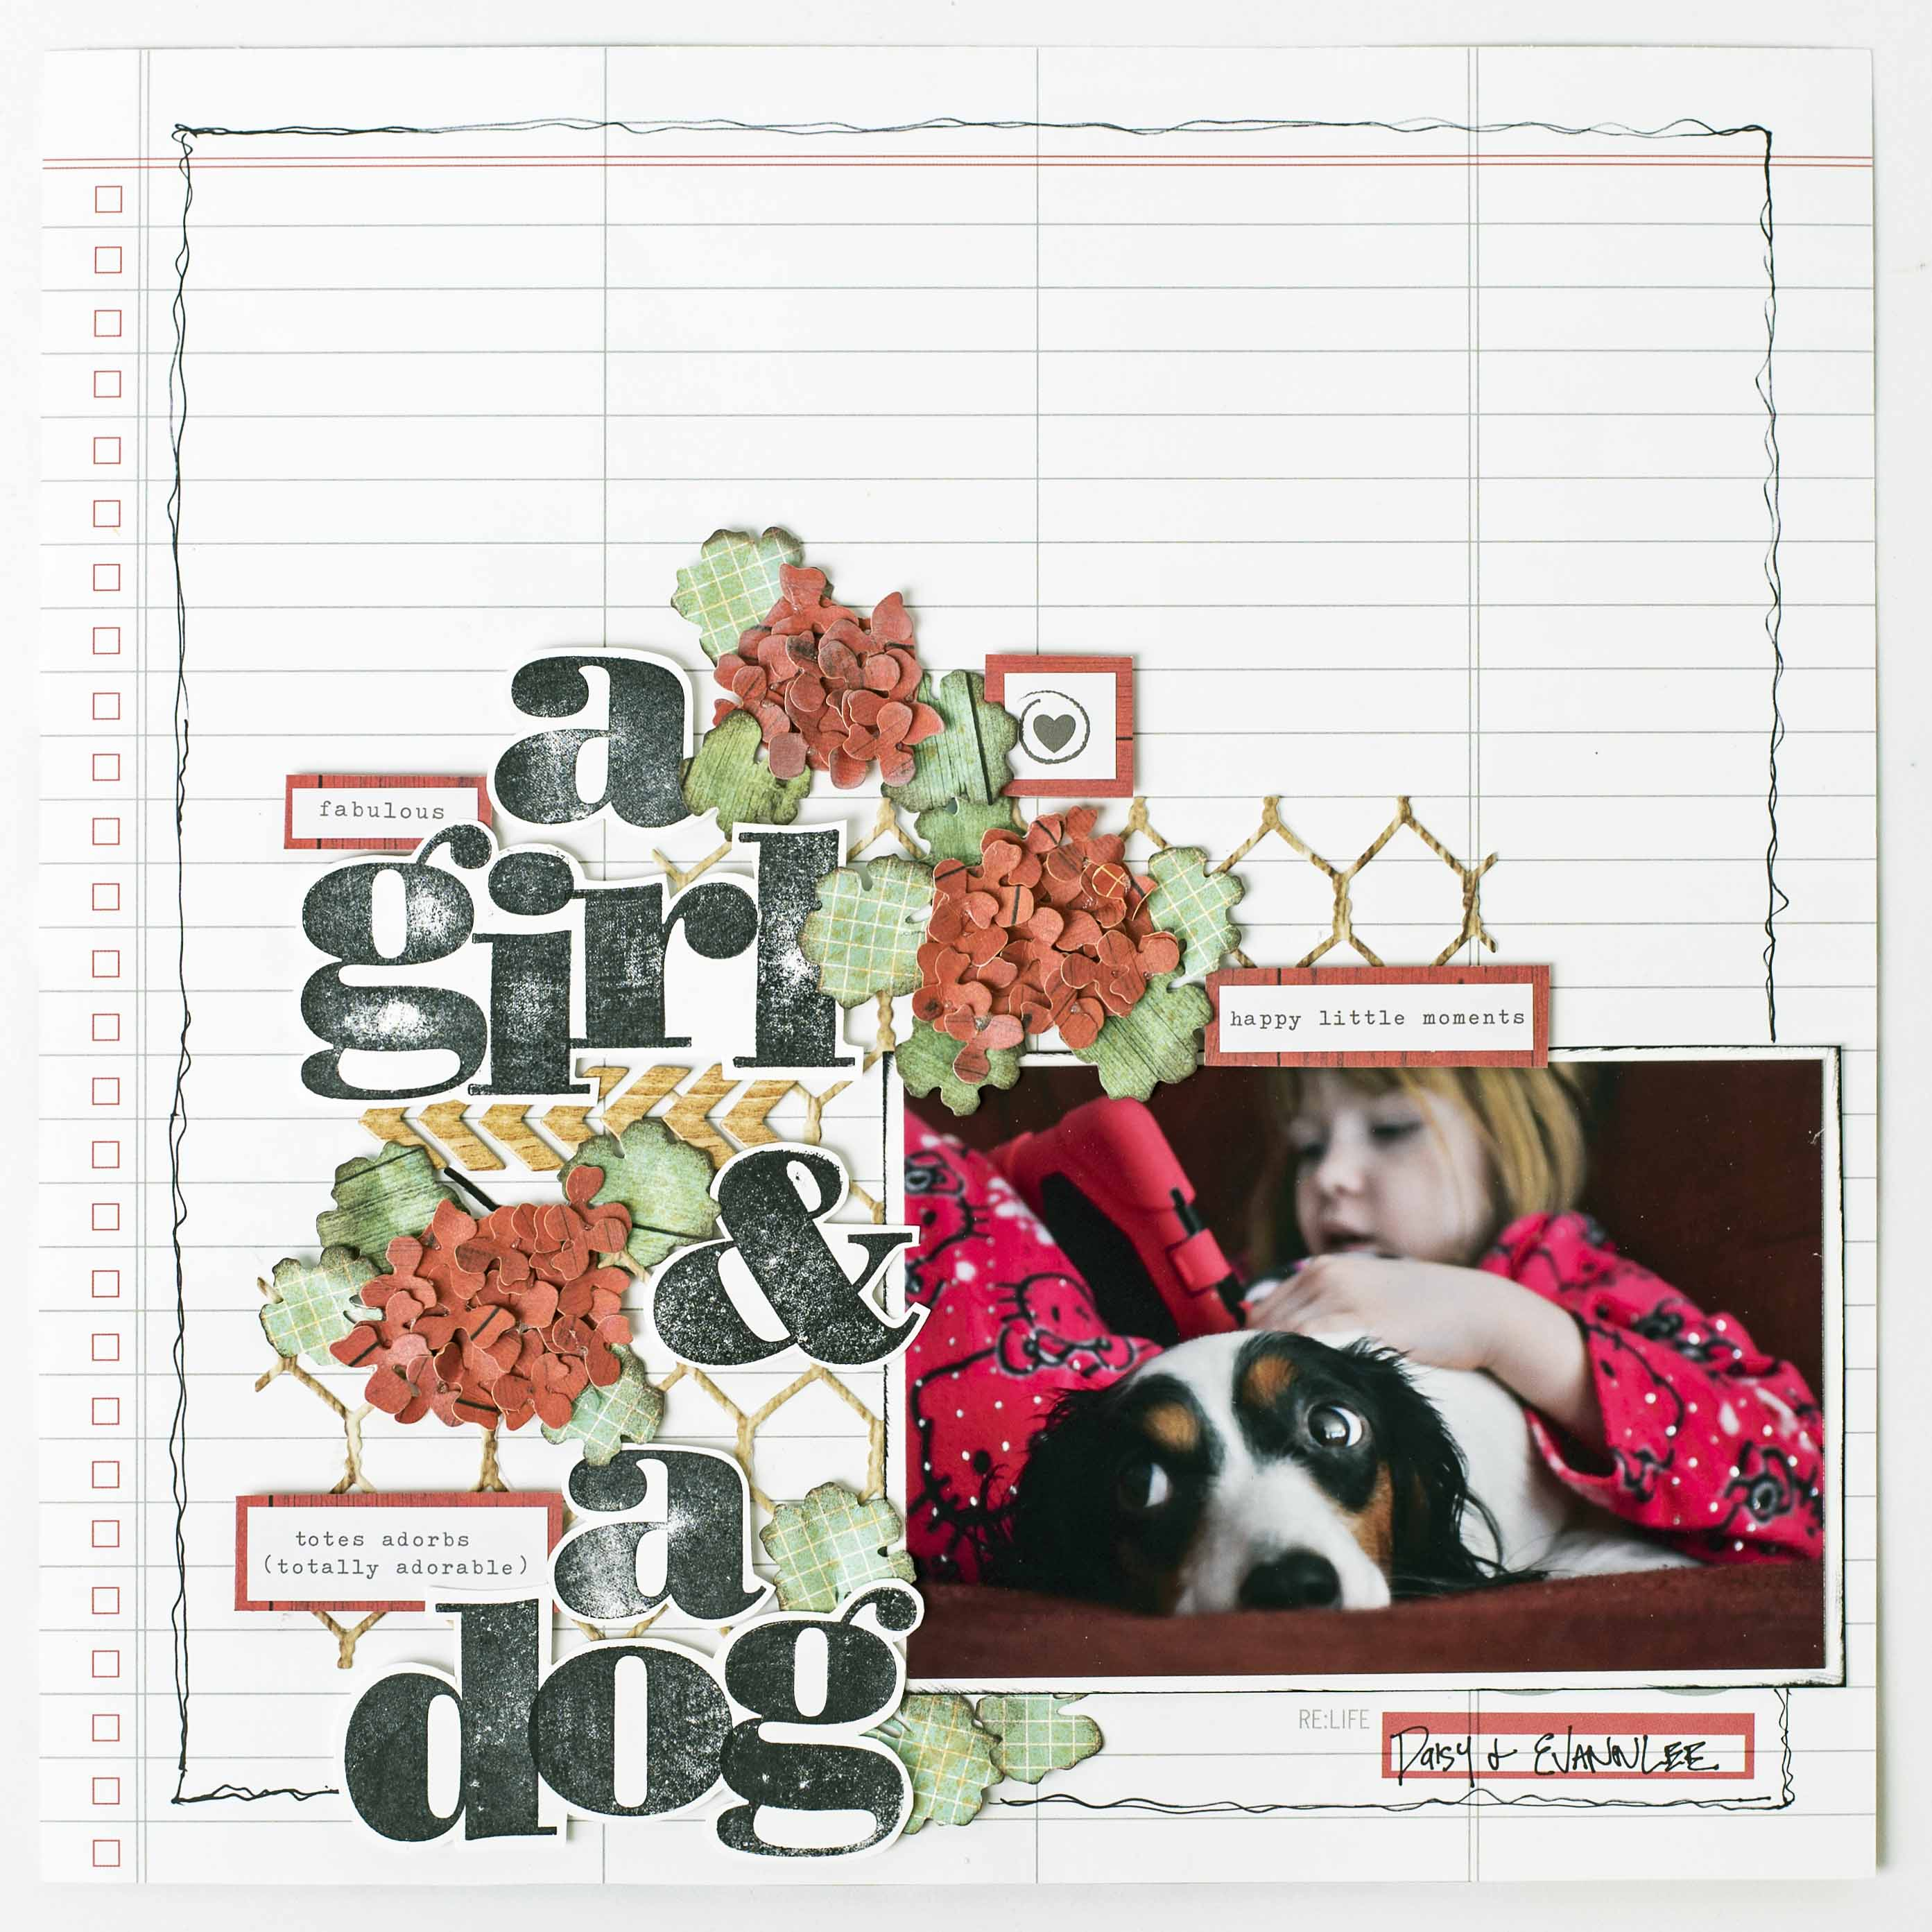 Scrapbooking layout designed by Christy Riopel with a photo of a little girl and her dog featuring intricate dies from Elizabeth Craft Designs and Stampin' Up! aphabet